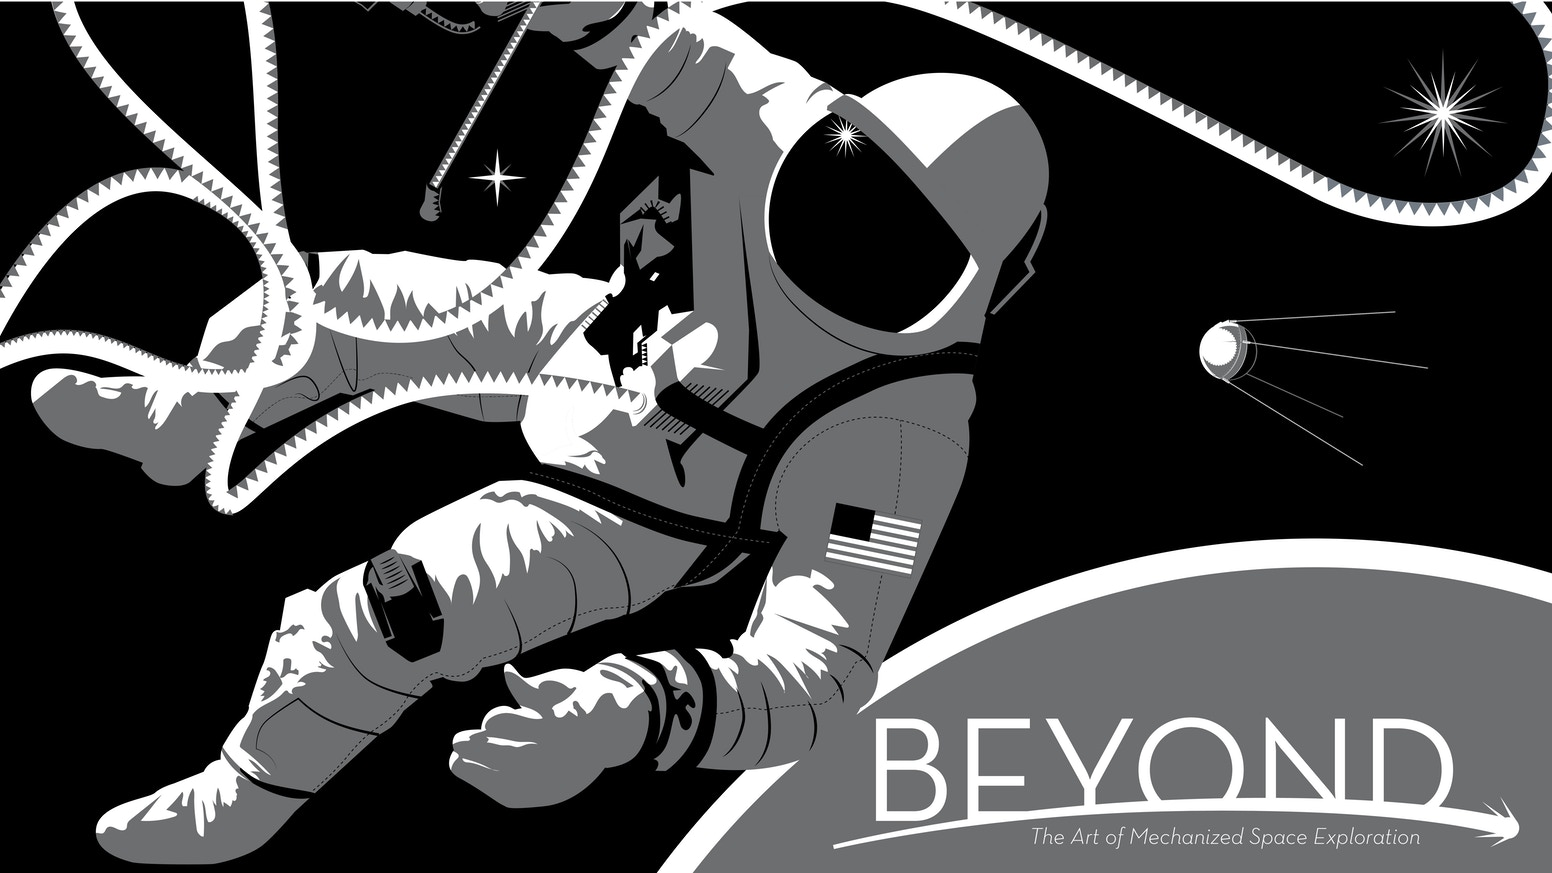 A beautiful hardcover collection of stunning graphic art featuring some of mankind's mechanical space explorers.